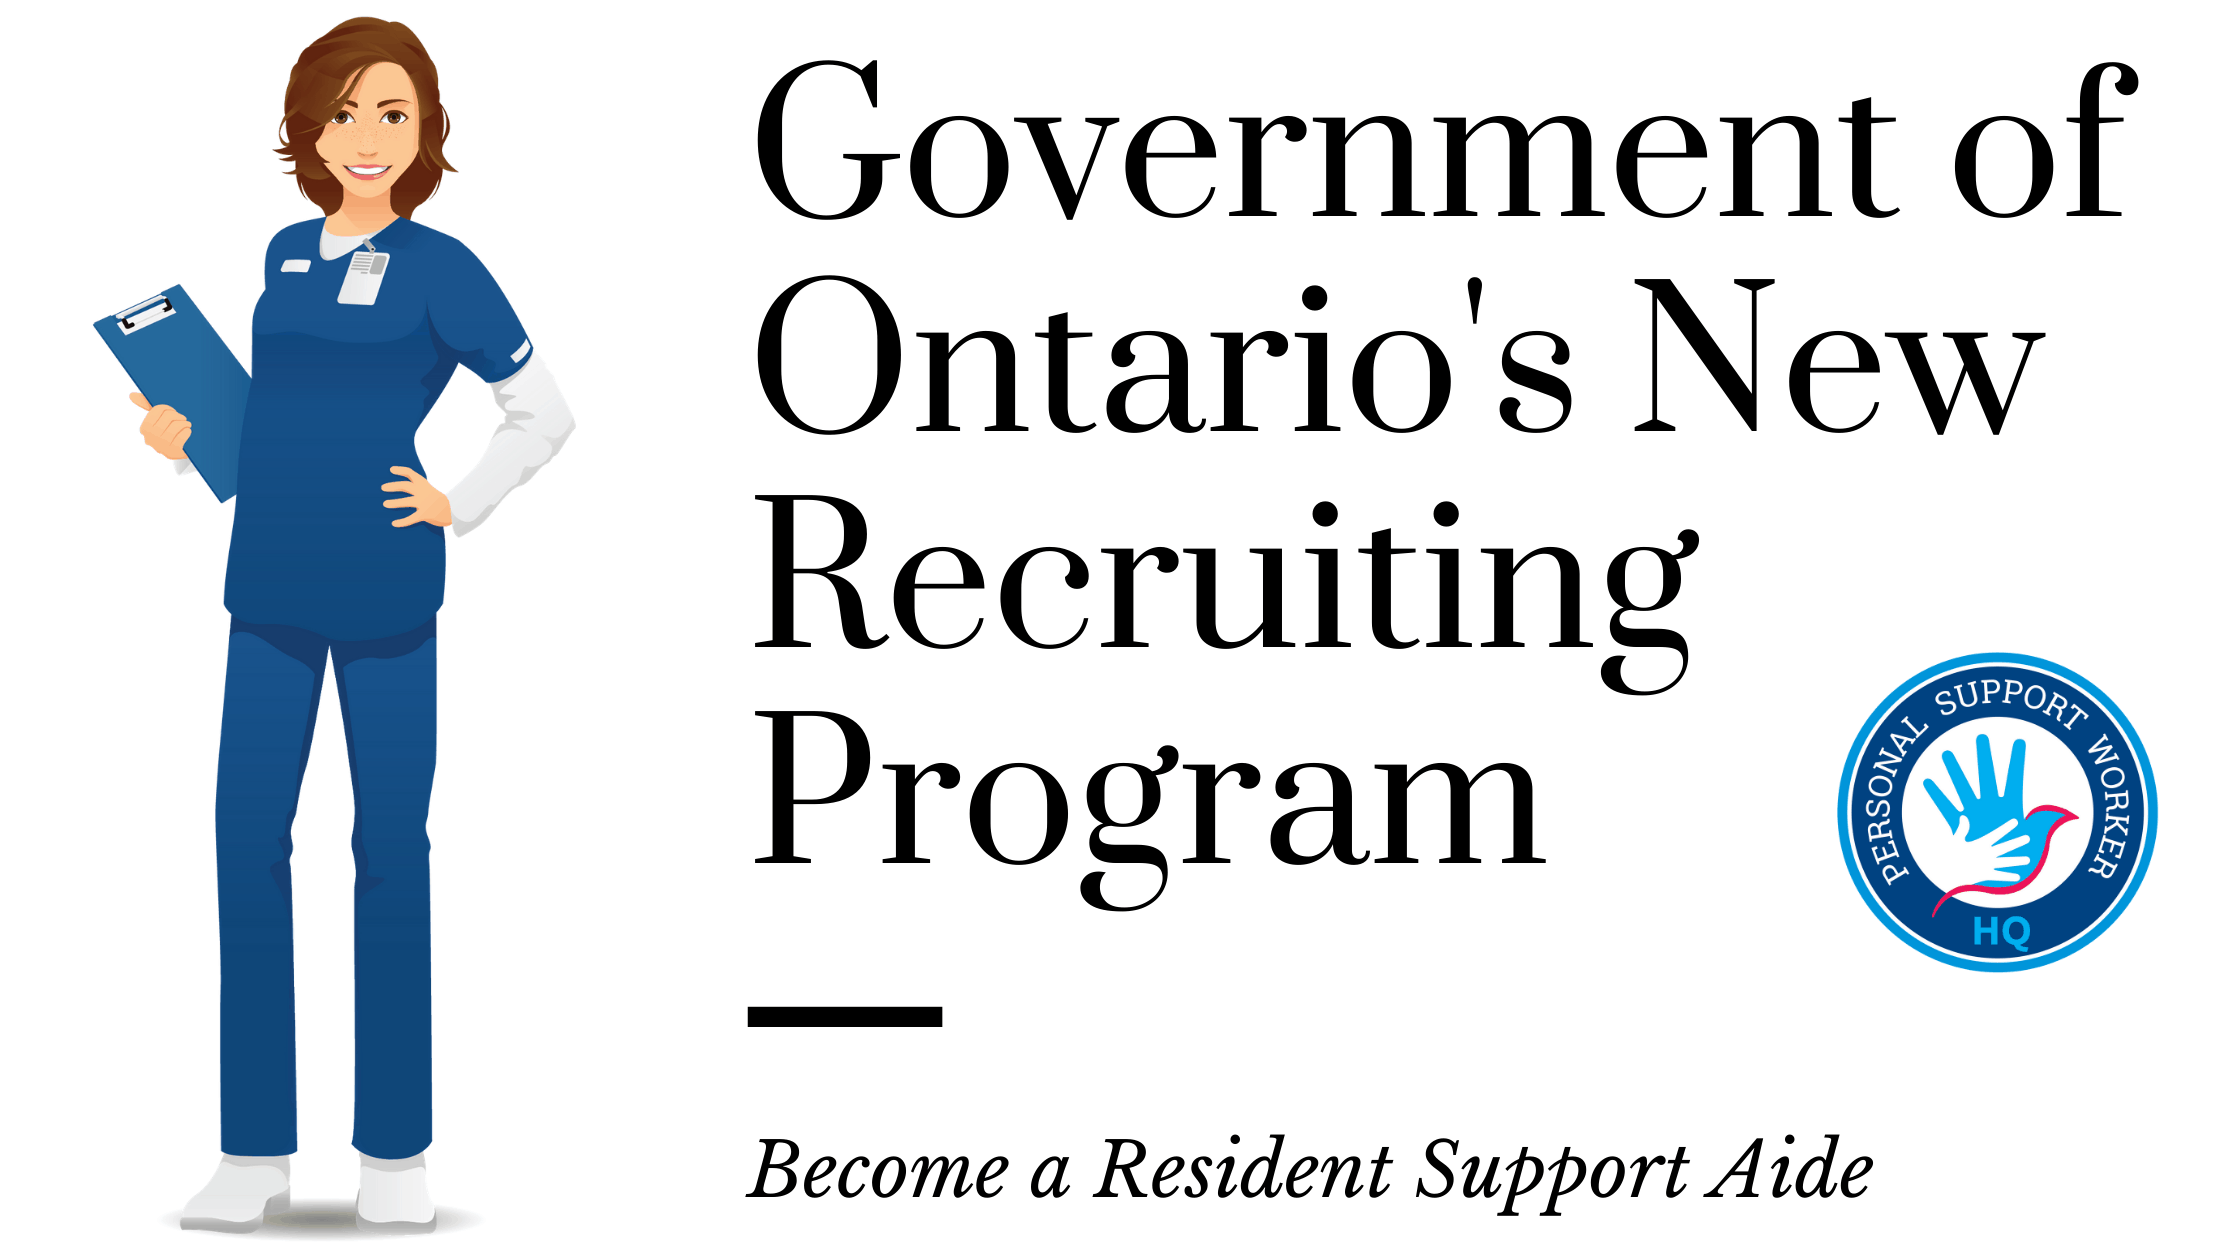 The Government of Ontario's new recruiting program. Work as resident support aide.